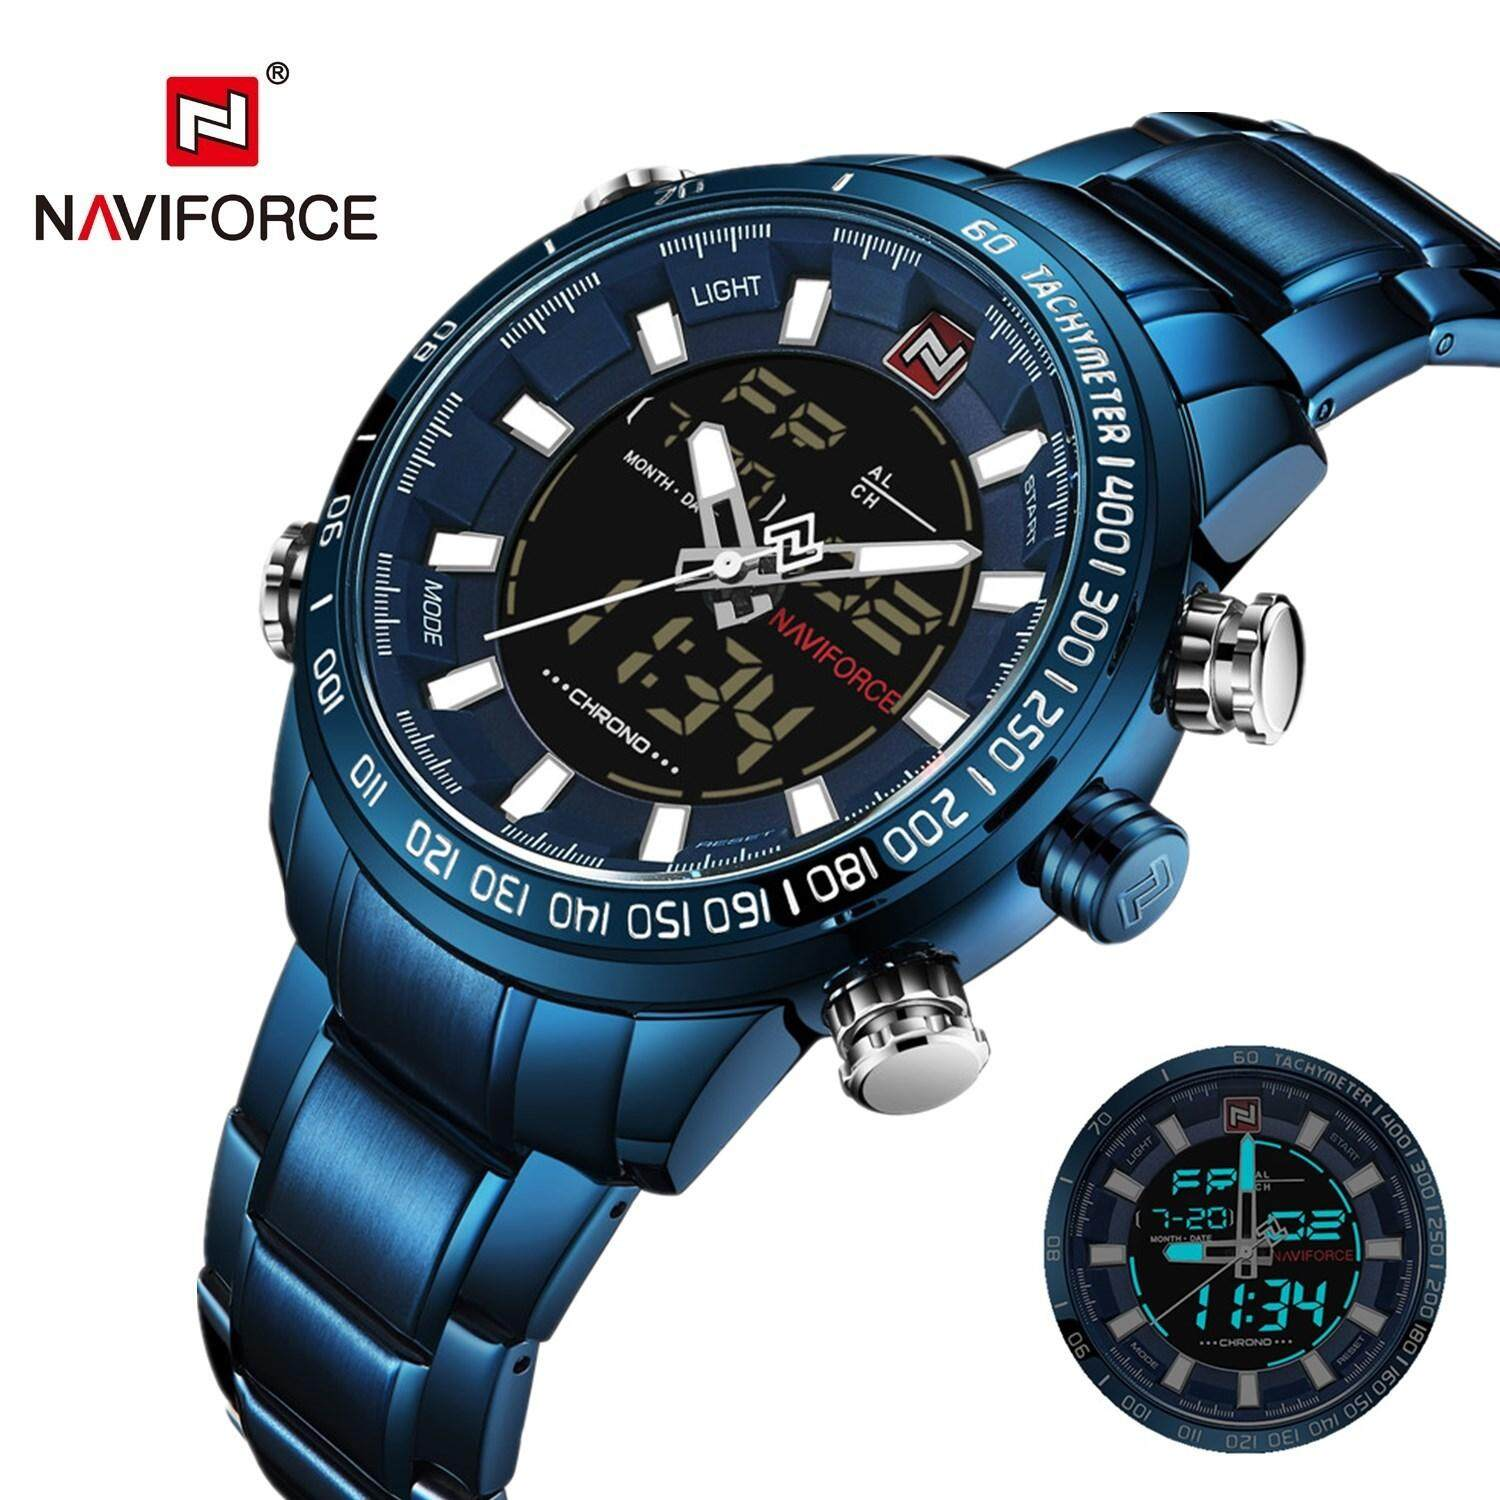 fe28f44e0bb NAVIFORCE Watches price in Malaysia - Best NAVIFORCE Watches